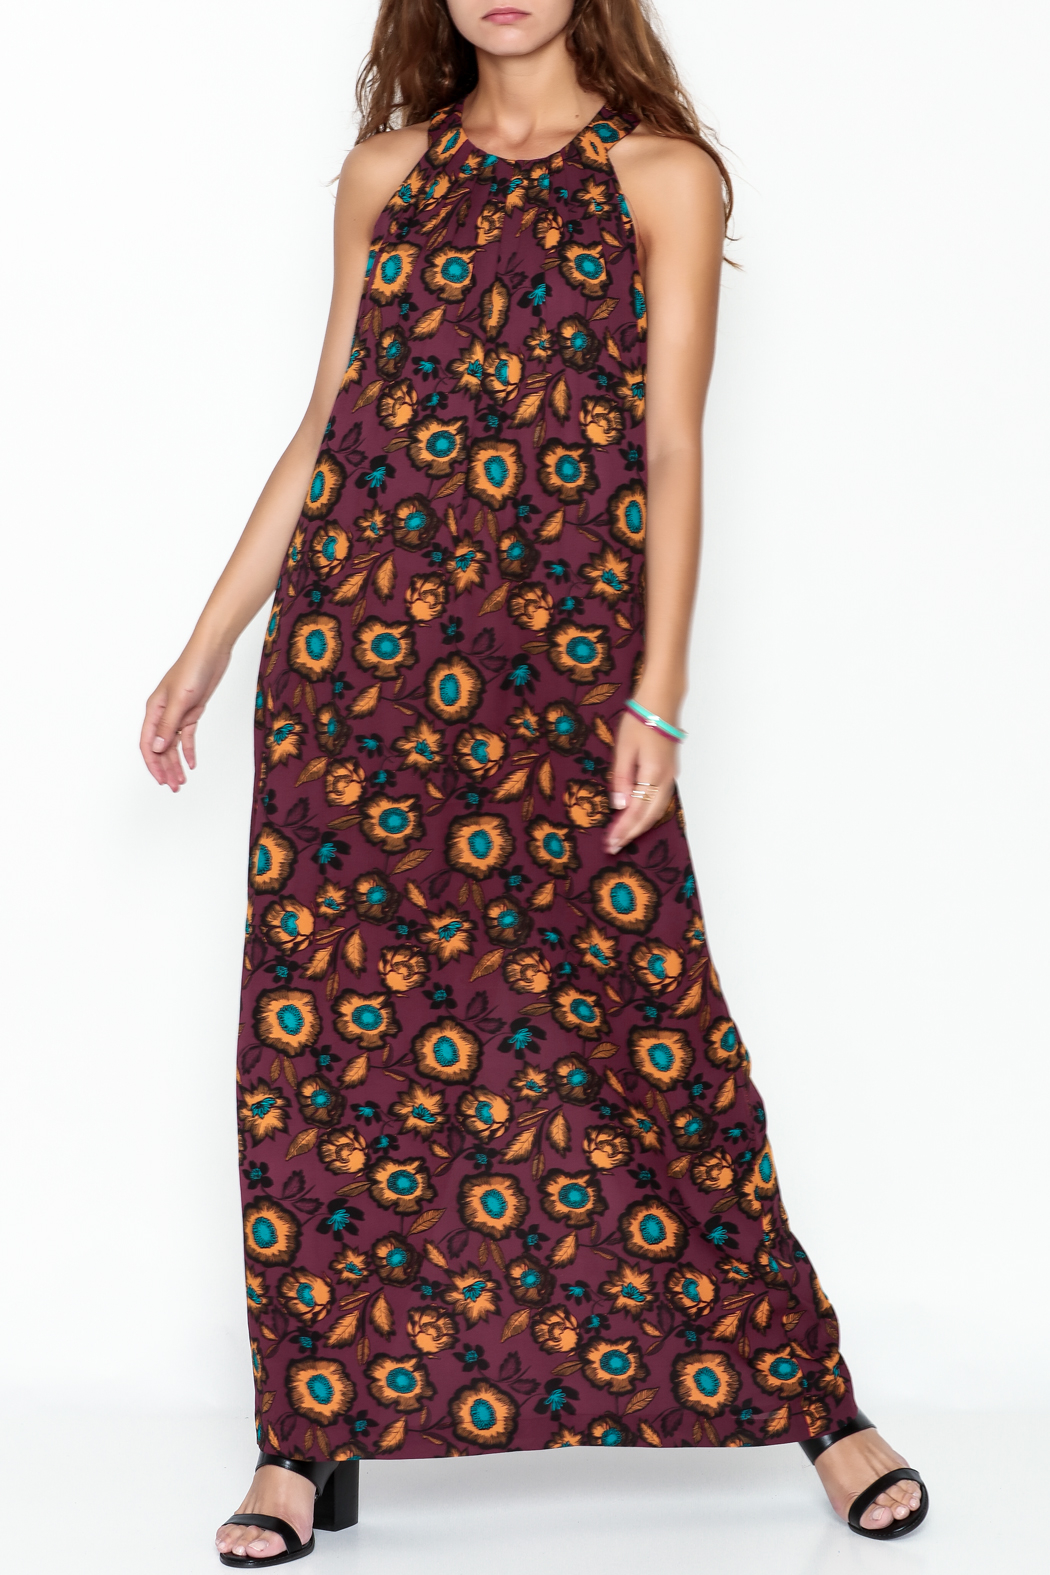 Everly Burgundy Floral Maxi Dress - Main Image